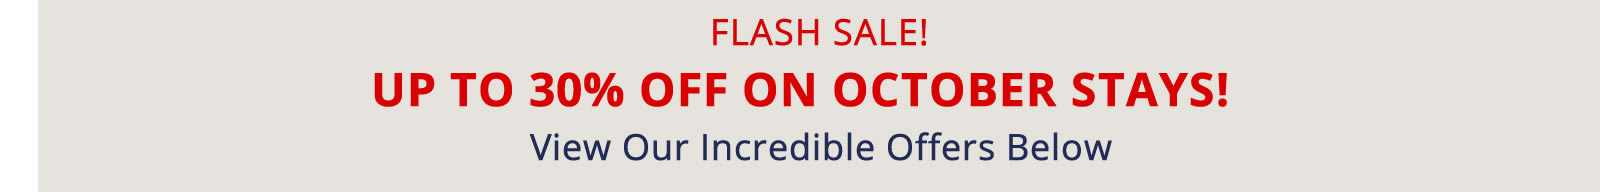 FLASH SALE! UP TO 30% OFF ON OCTOBER STAYS!